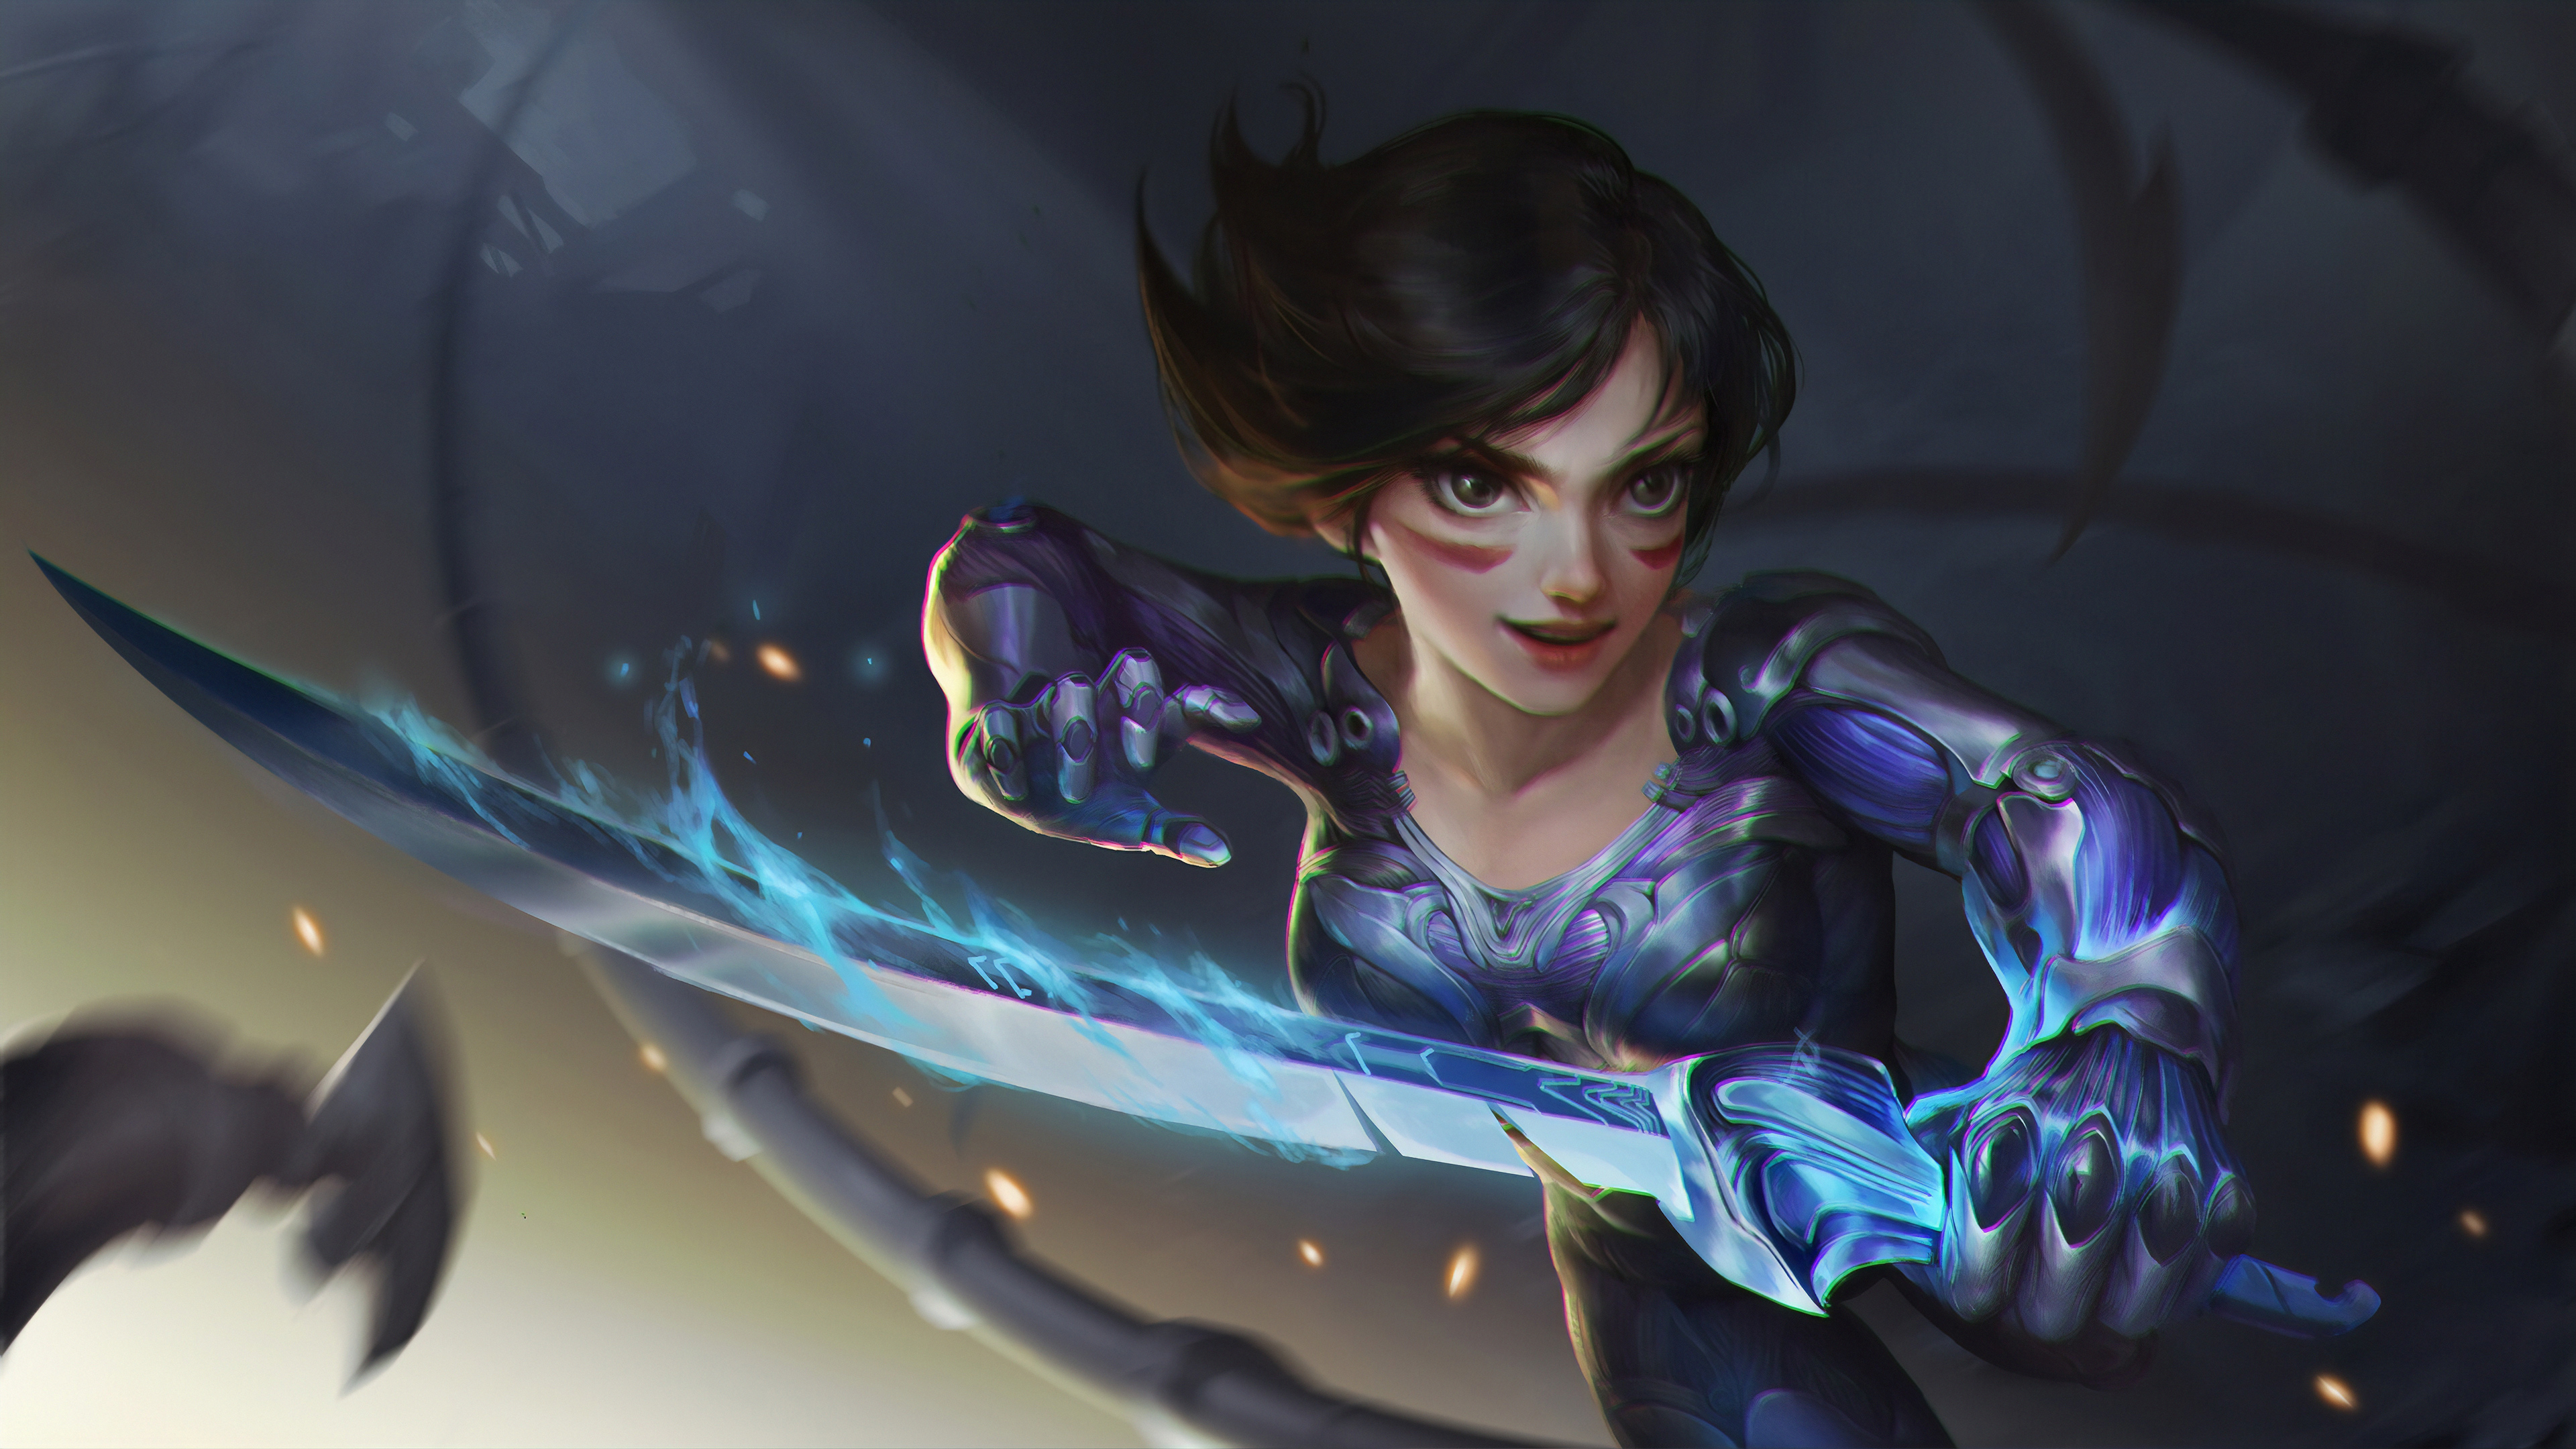 alita battle angel hero 1570394399 - Alita Battle Angel Hero - hd-wallpapers, artwork wallpapers, artstation wallpapers, artist wallpapers, alita battle angel wallpapers